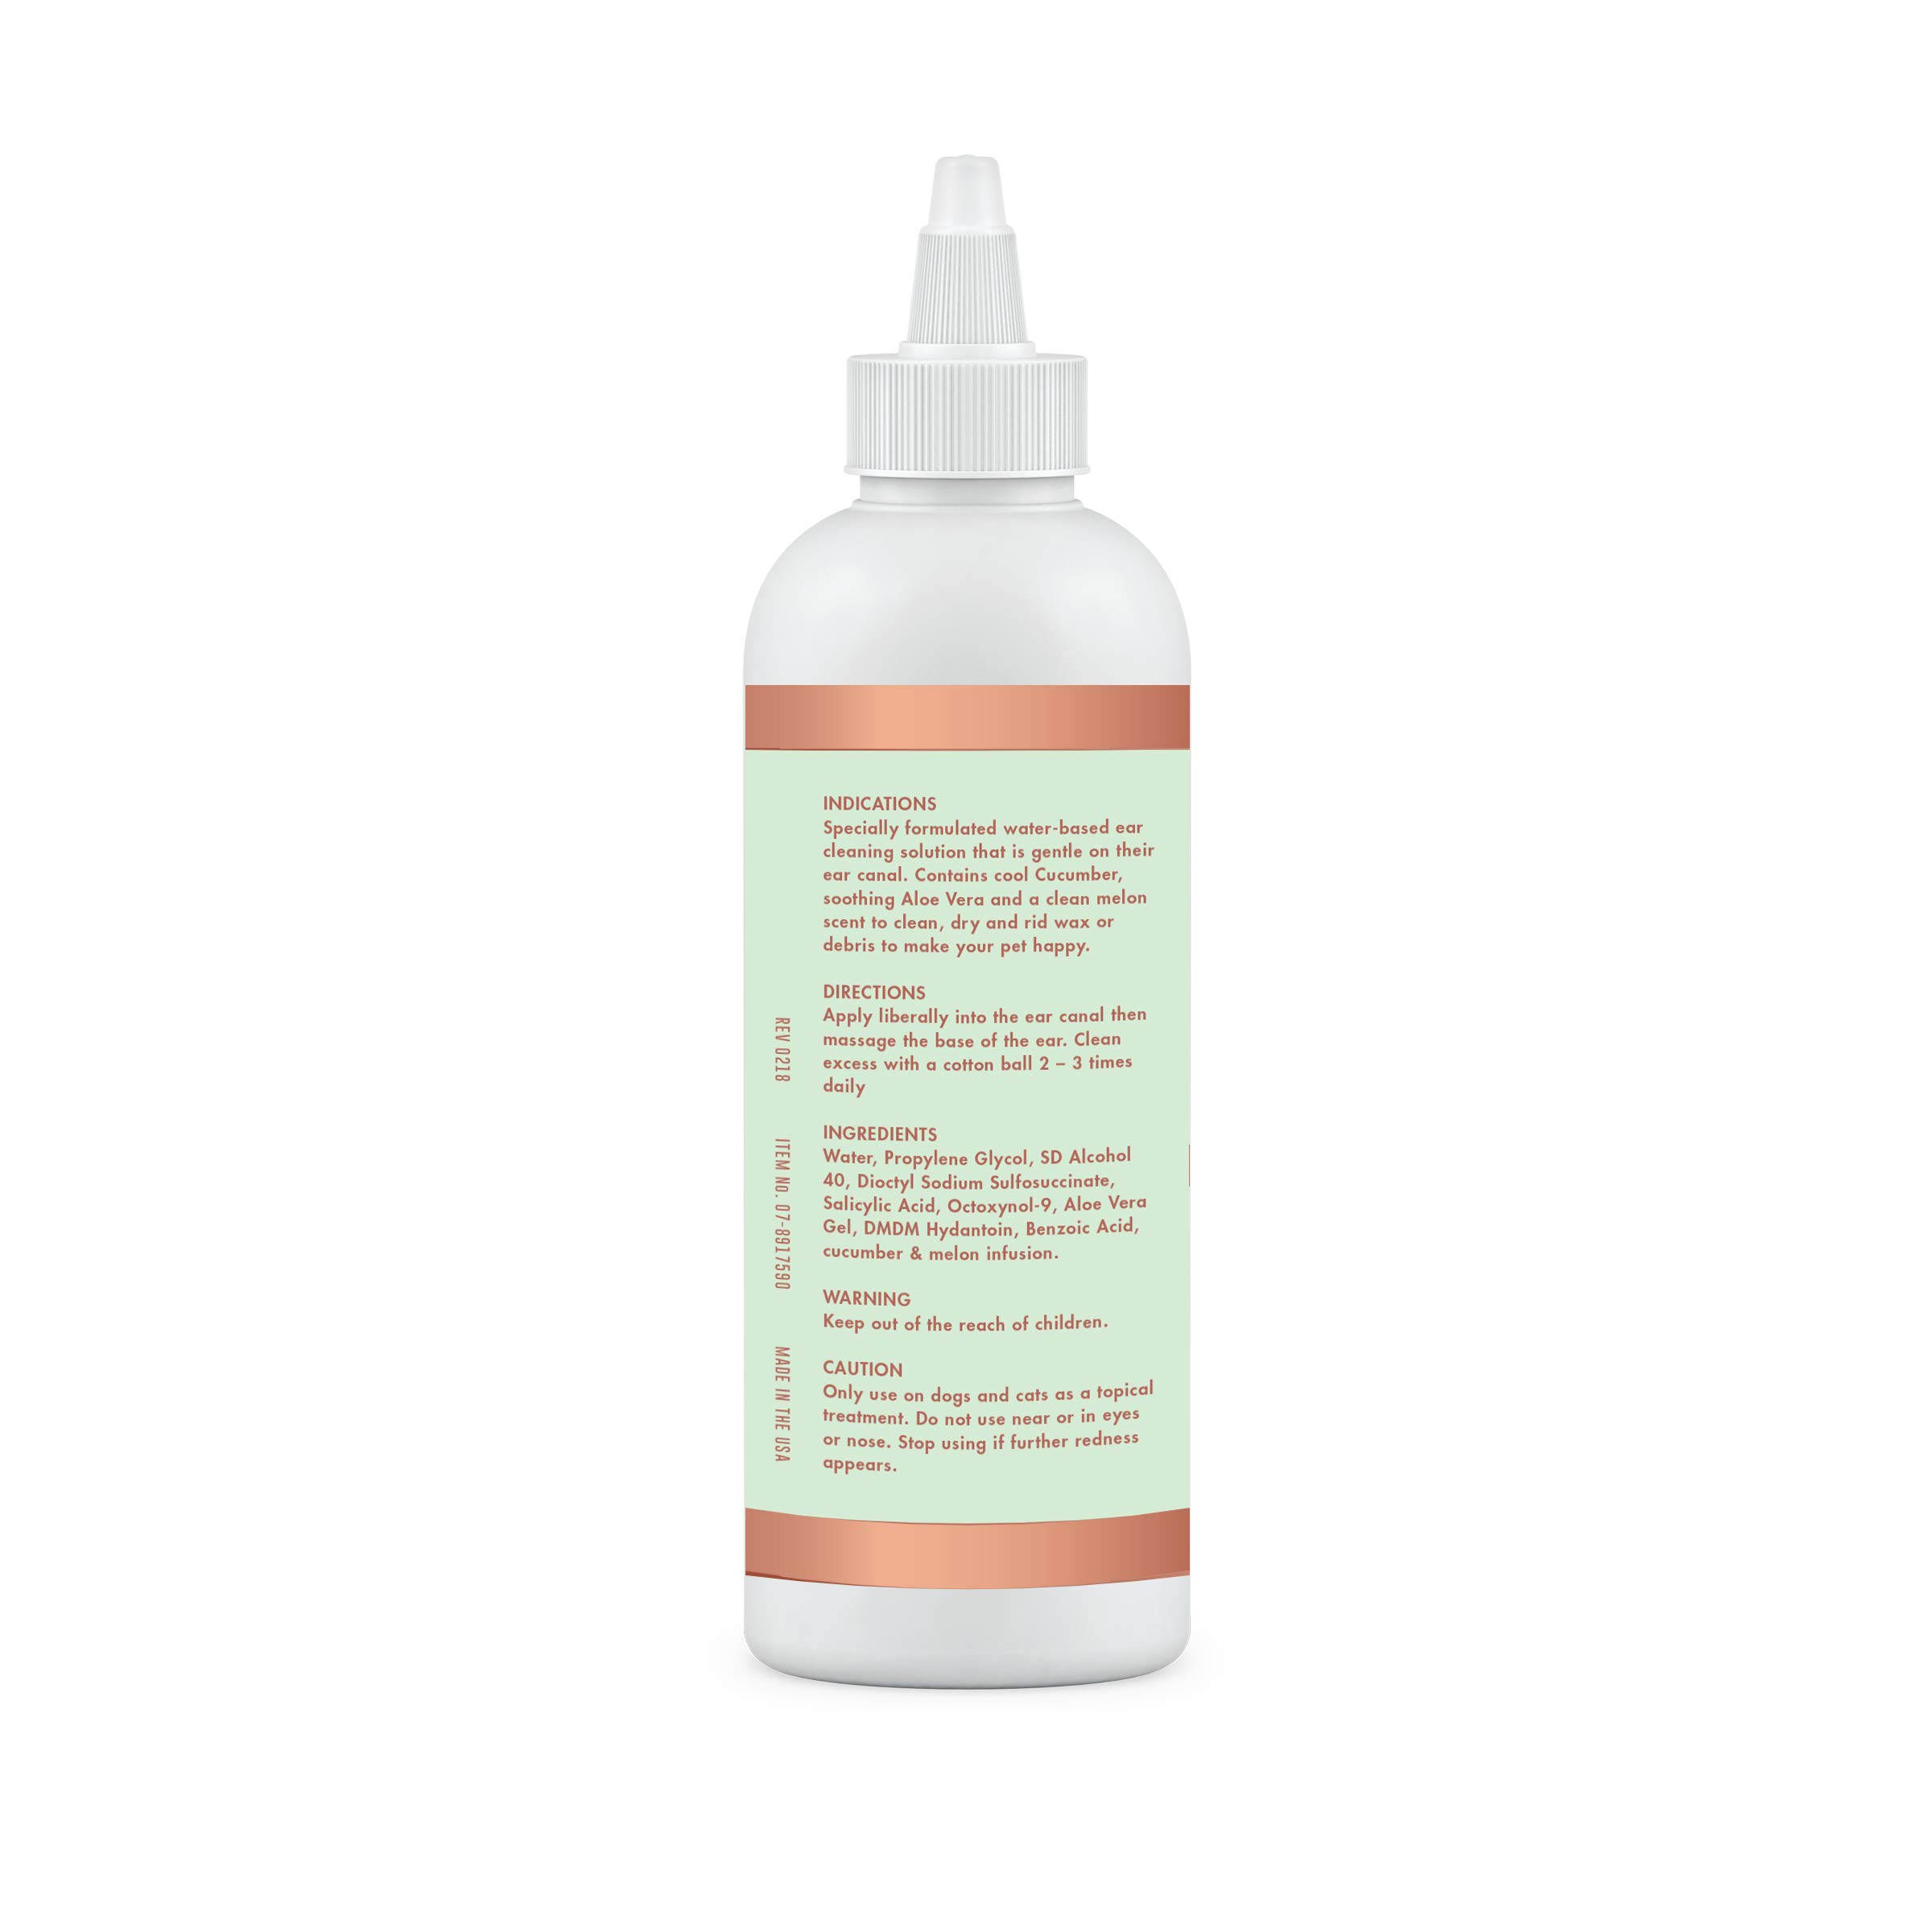 Dog Ear Cleaning Solution To Remove Stinky Stuff In Ears Like Ear Wax To Avoid Infection For Cats And Dogs Cucumber Melon Buy Online In Faroe Islands At Desertcart